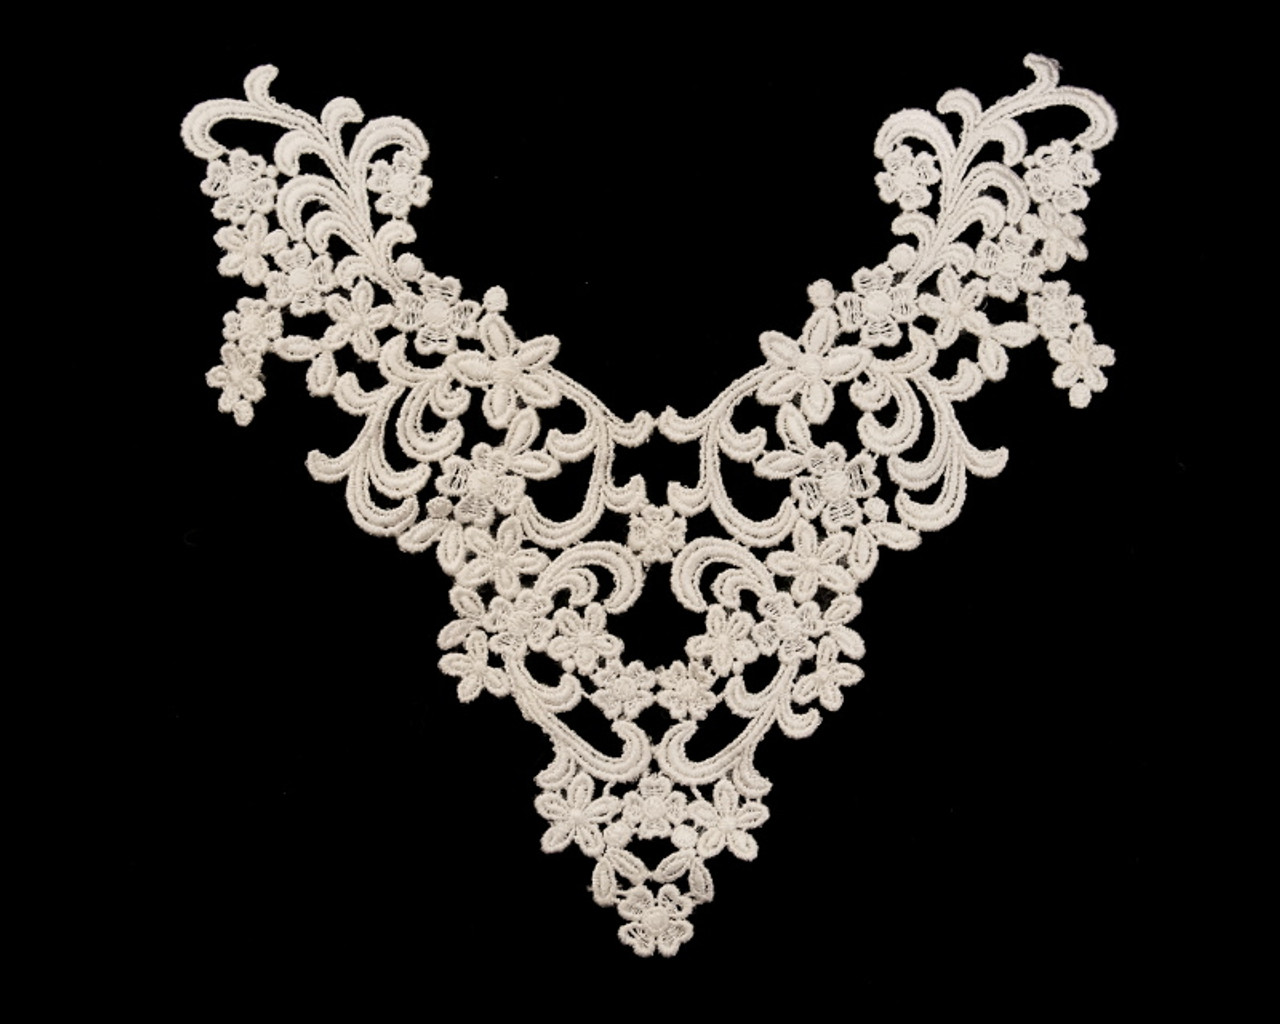 Quality bridal lace applique embroidered corded lace motif